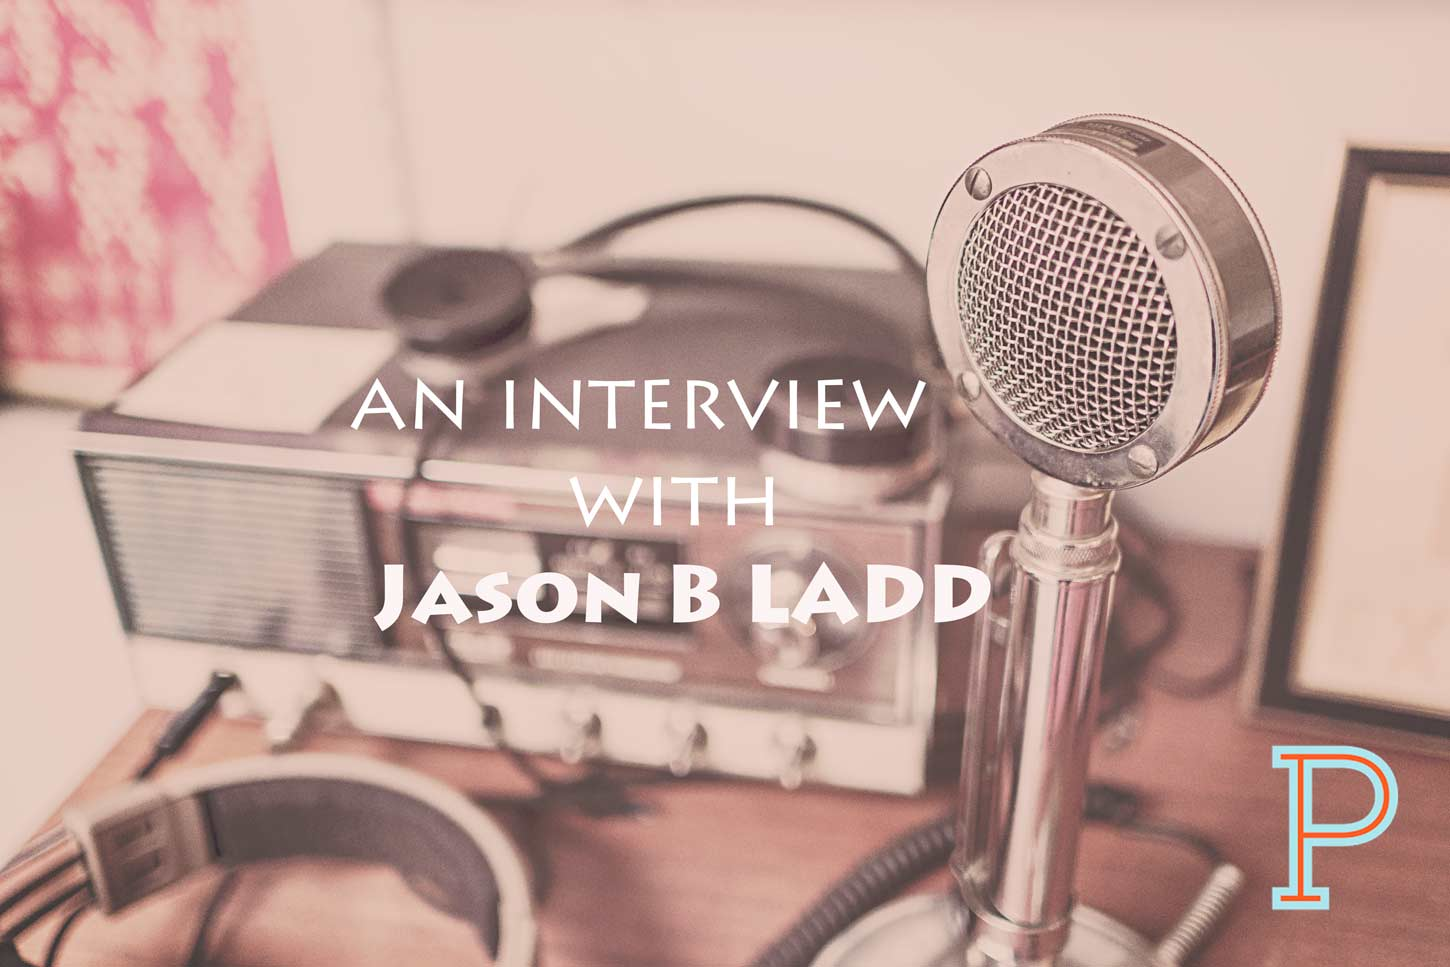 Jason-B-Ladd-Interview-Project-Pastor